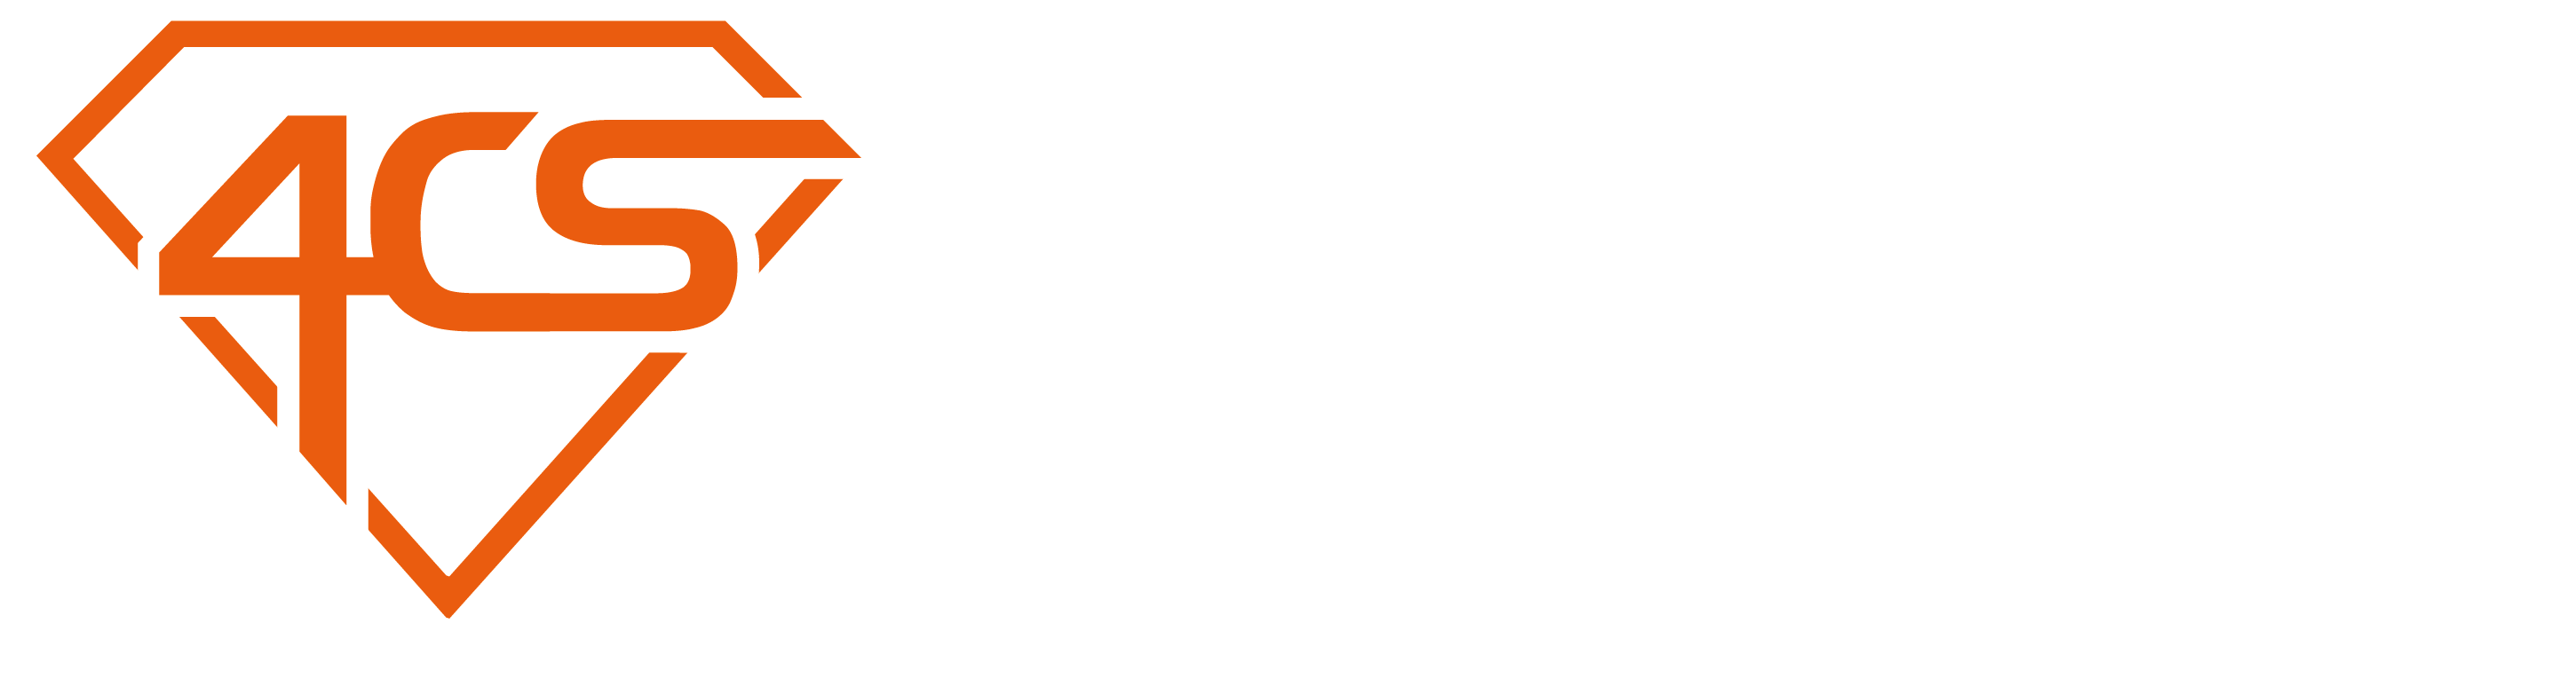 4CS-Security